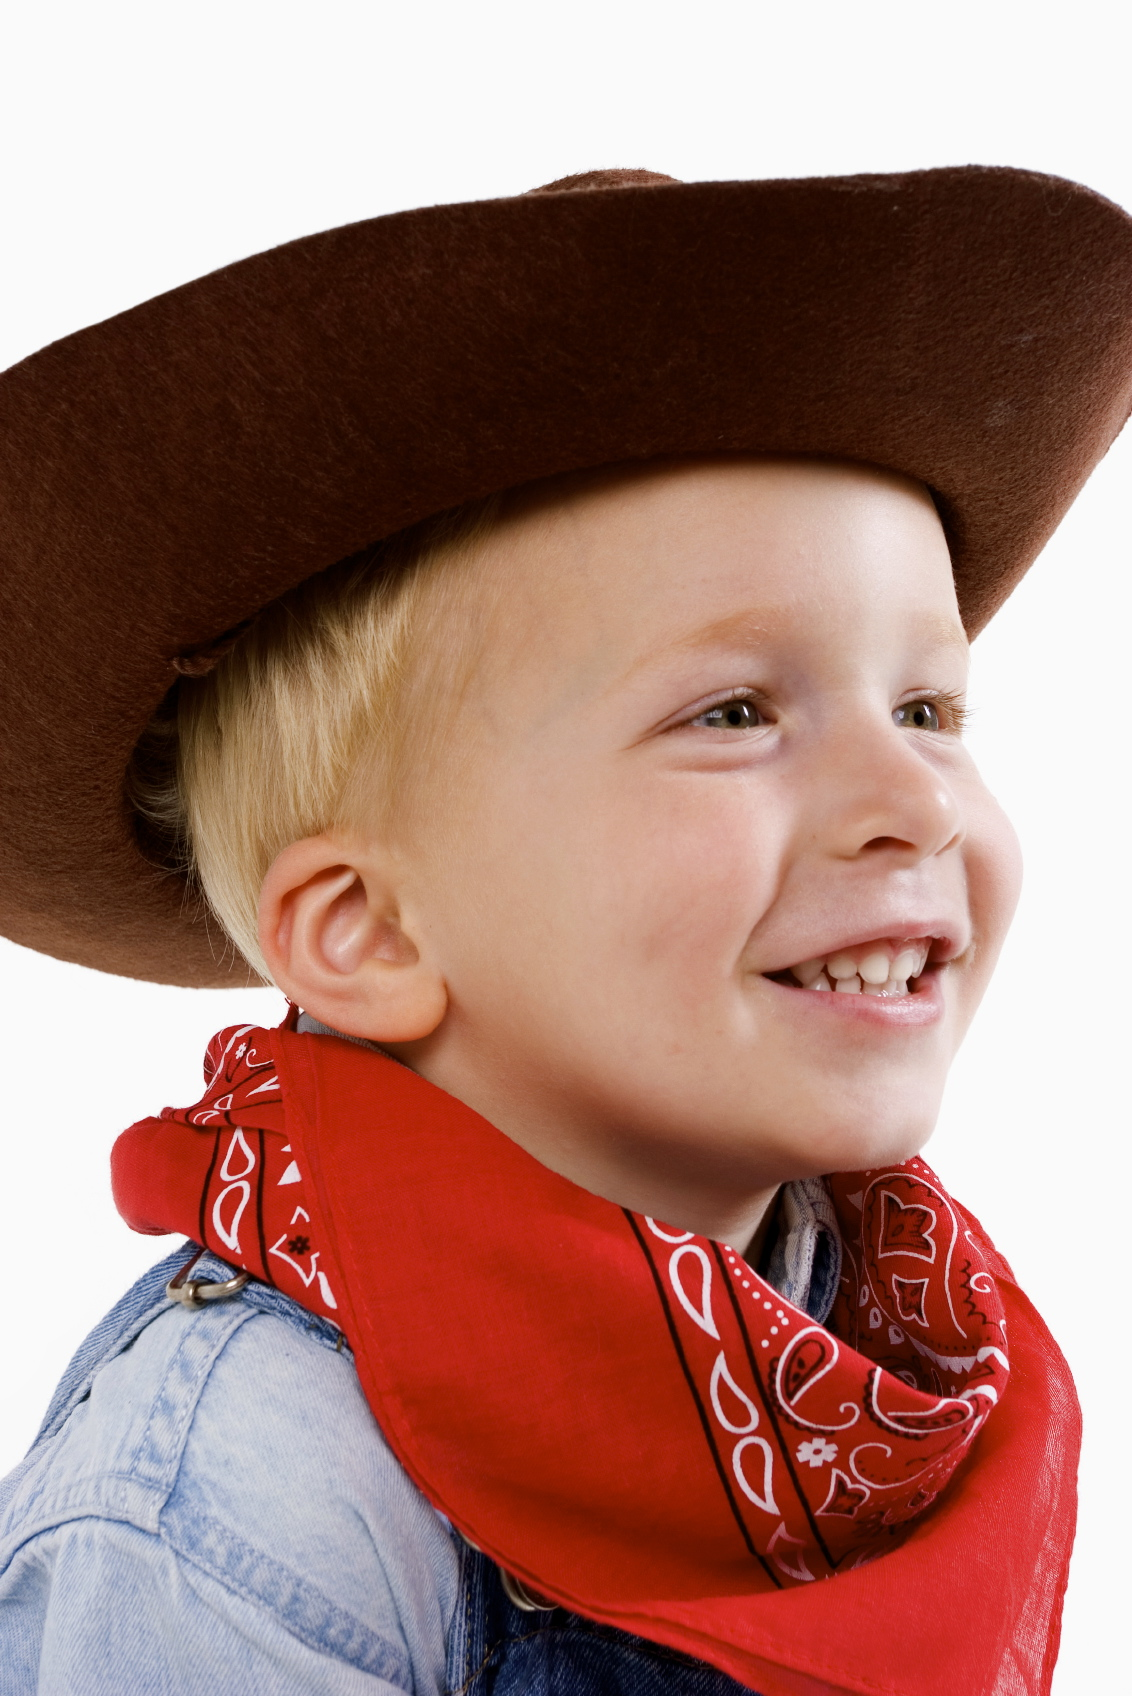 Happy young boy with a cowboy hat